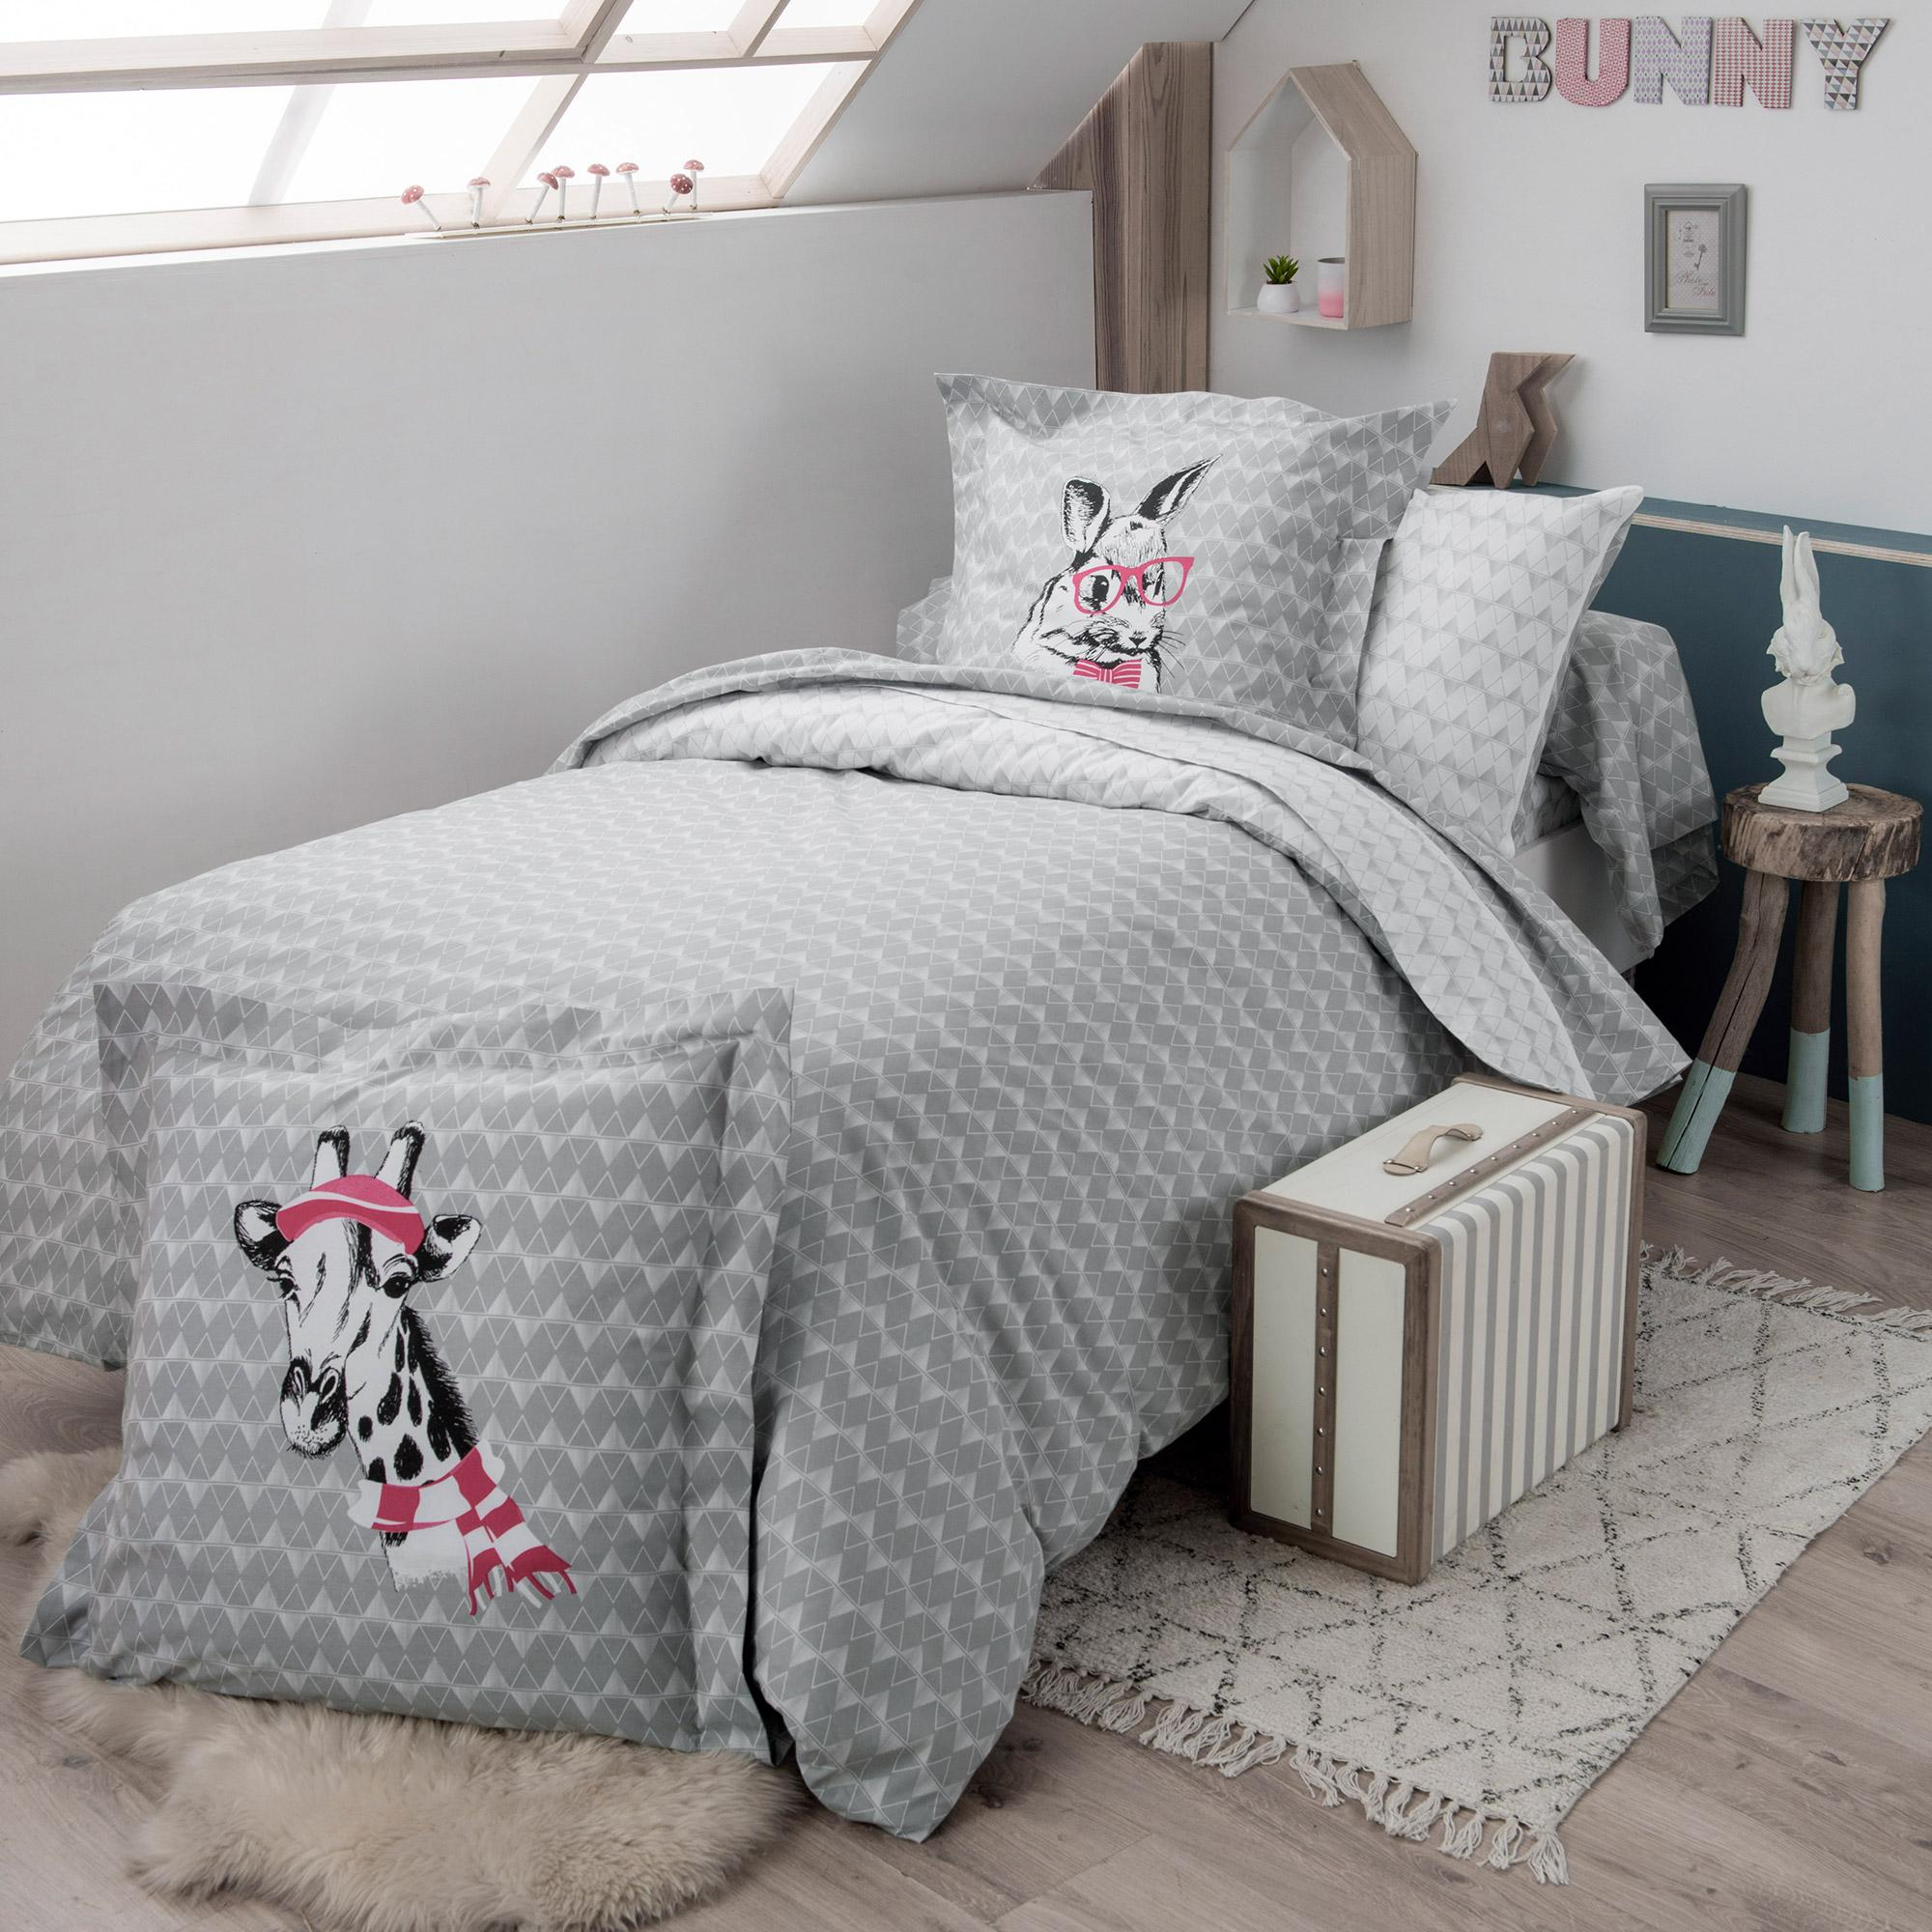 drap housse 90x190 cm 100 coton bunny linnea vente de linge de maison. Black Bedroom Furniture Sets. Home Design Ideas